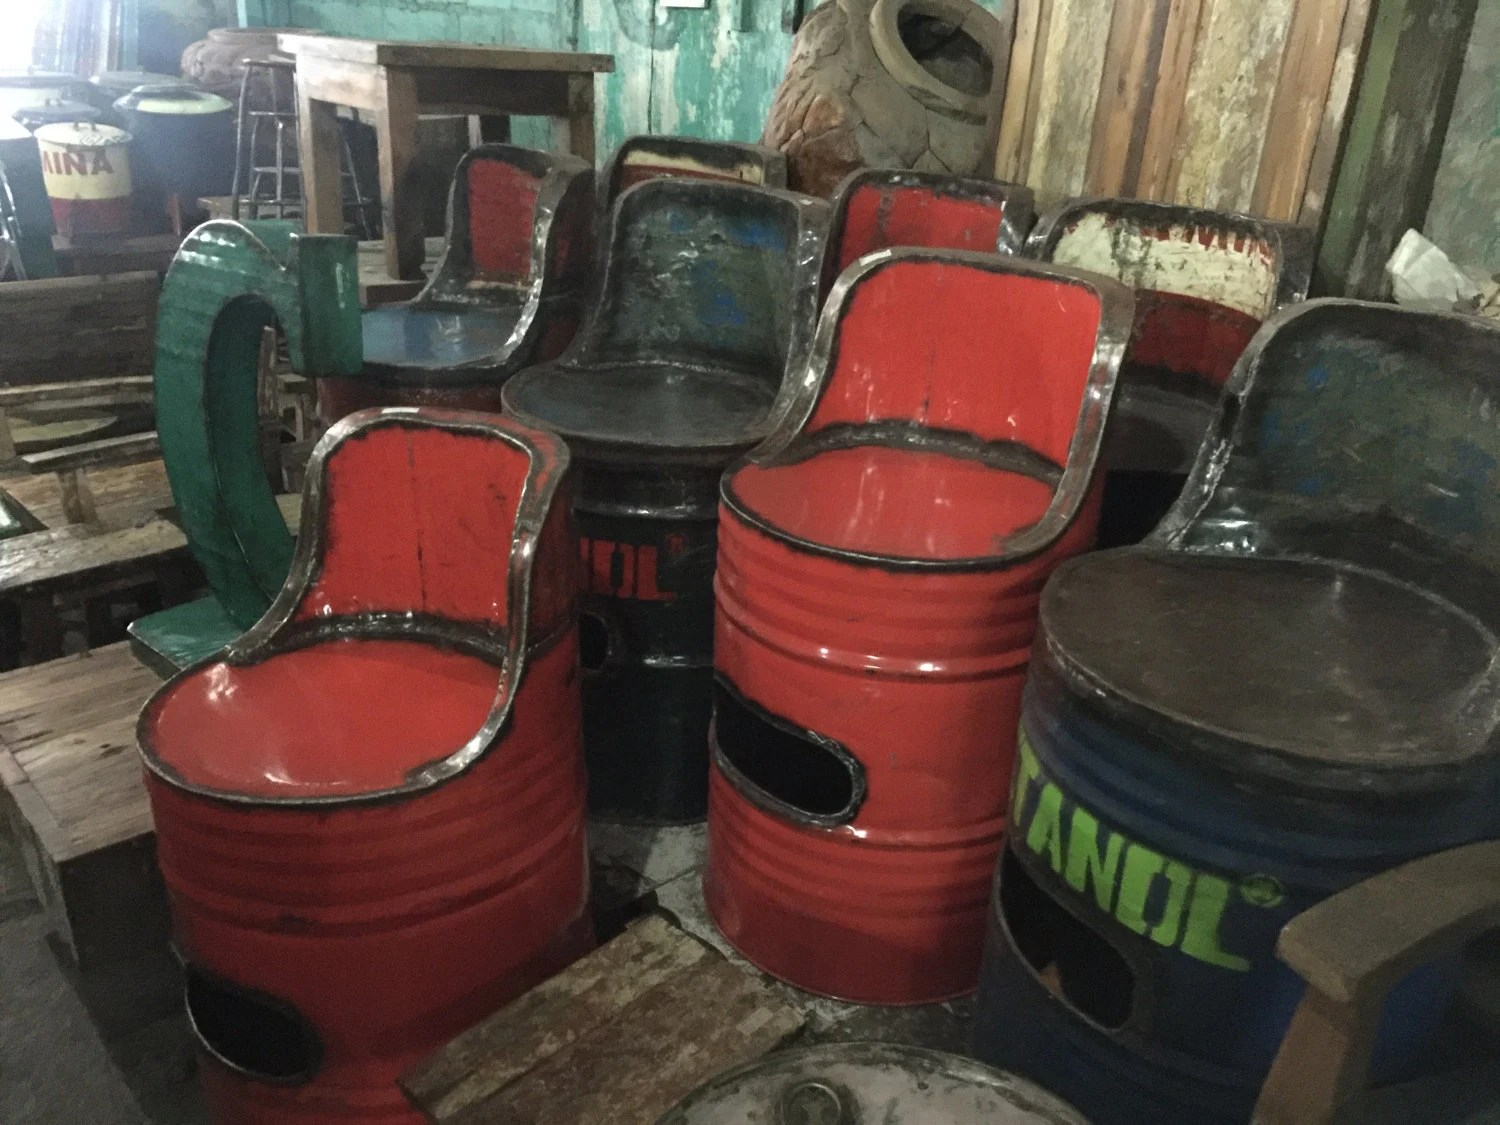 Drum Chair Recycled Oil Drum Seat Industrial Furniture Barrel Chair